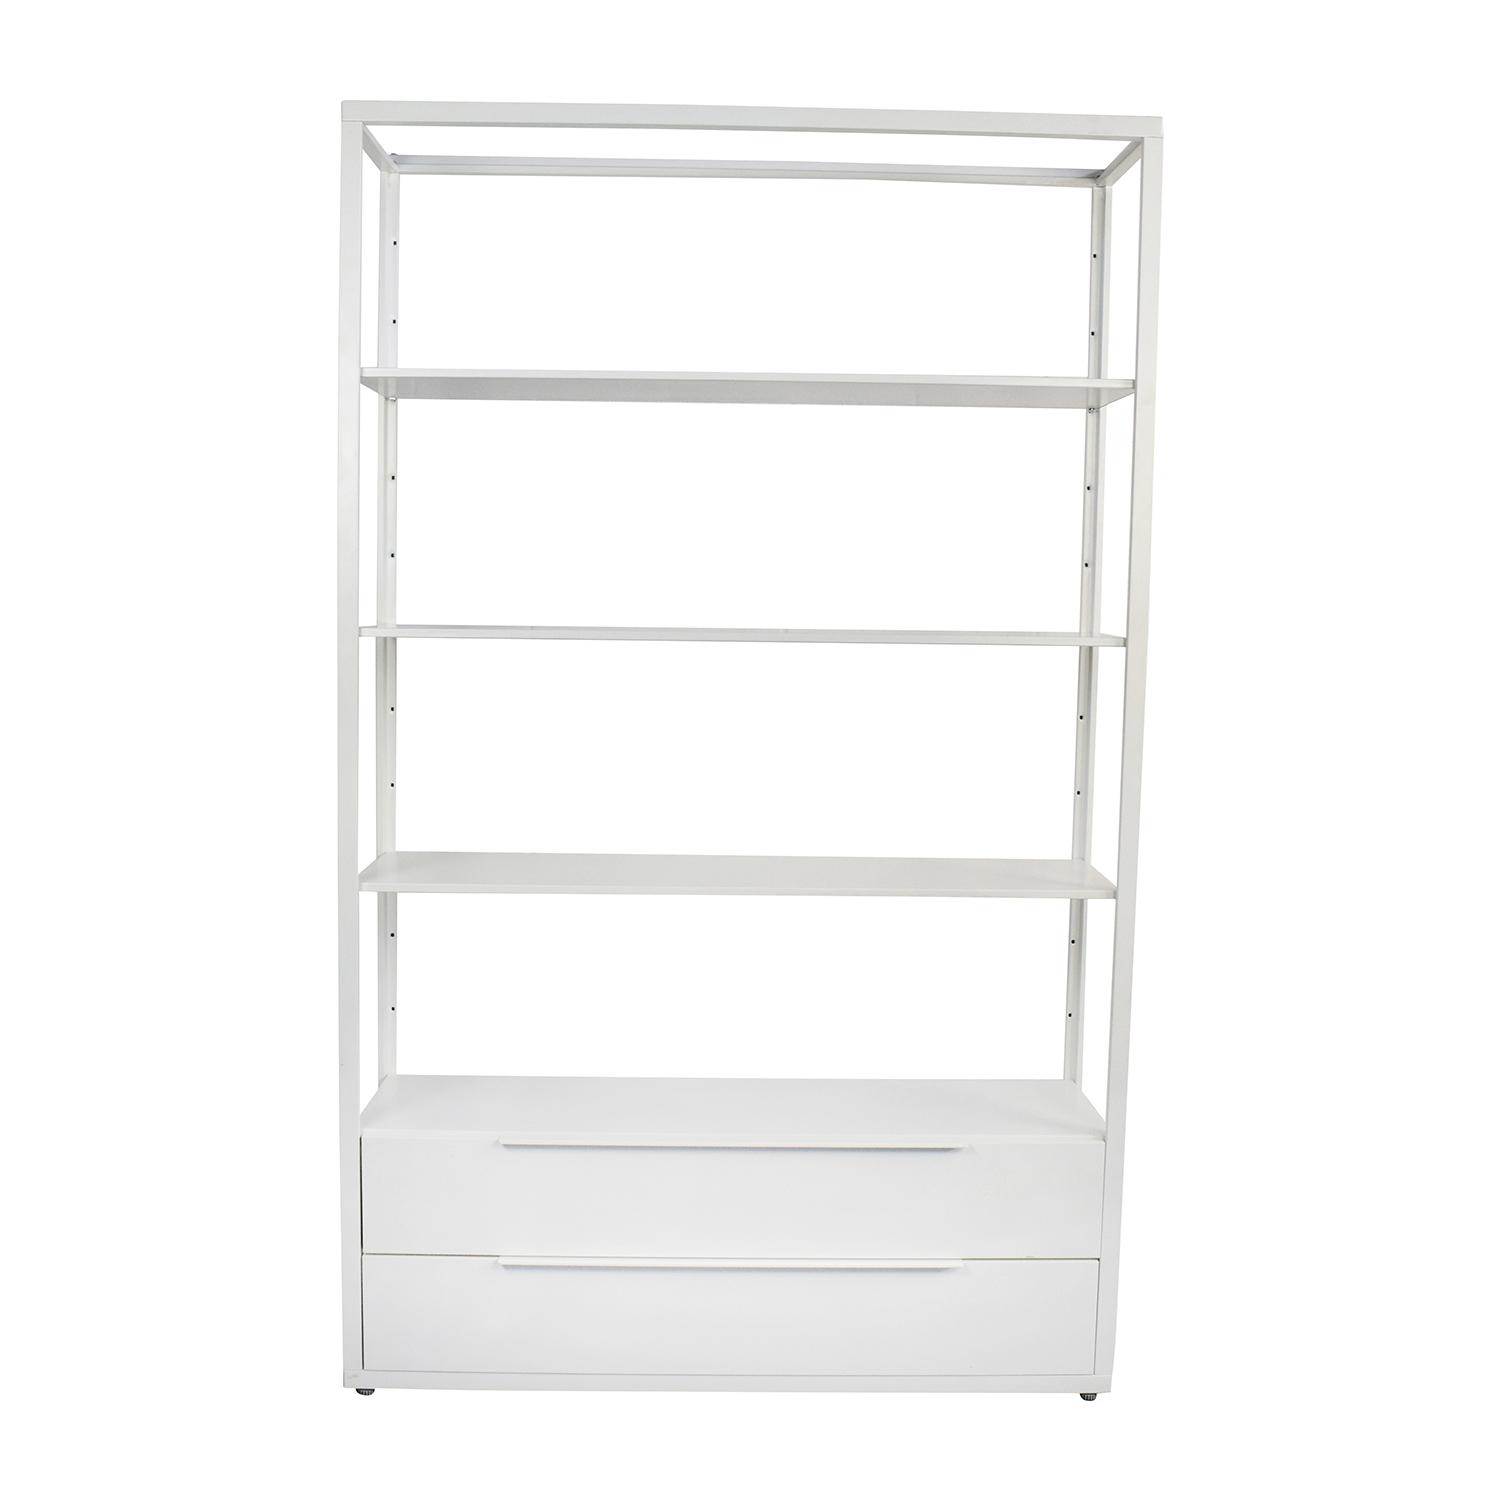 IKEA IKEA White Shelving Unit with Drawers used